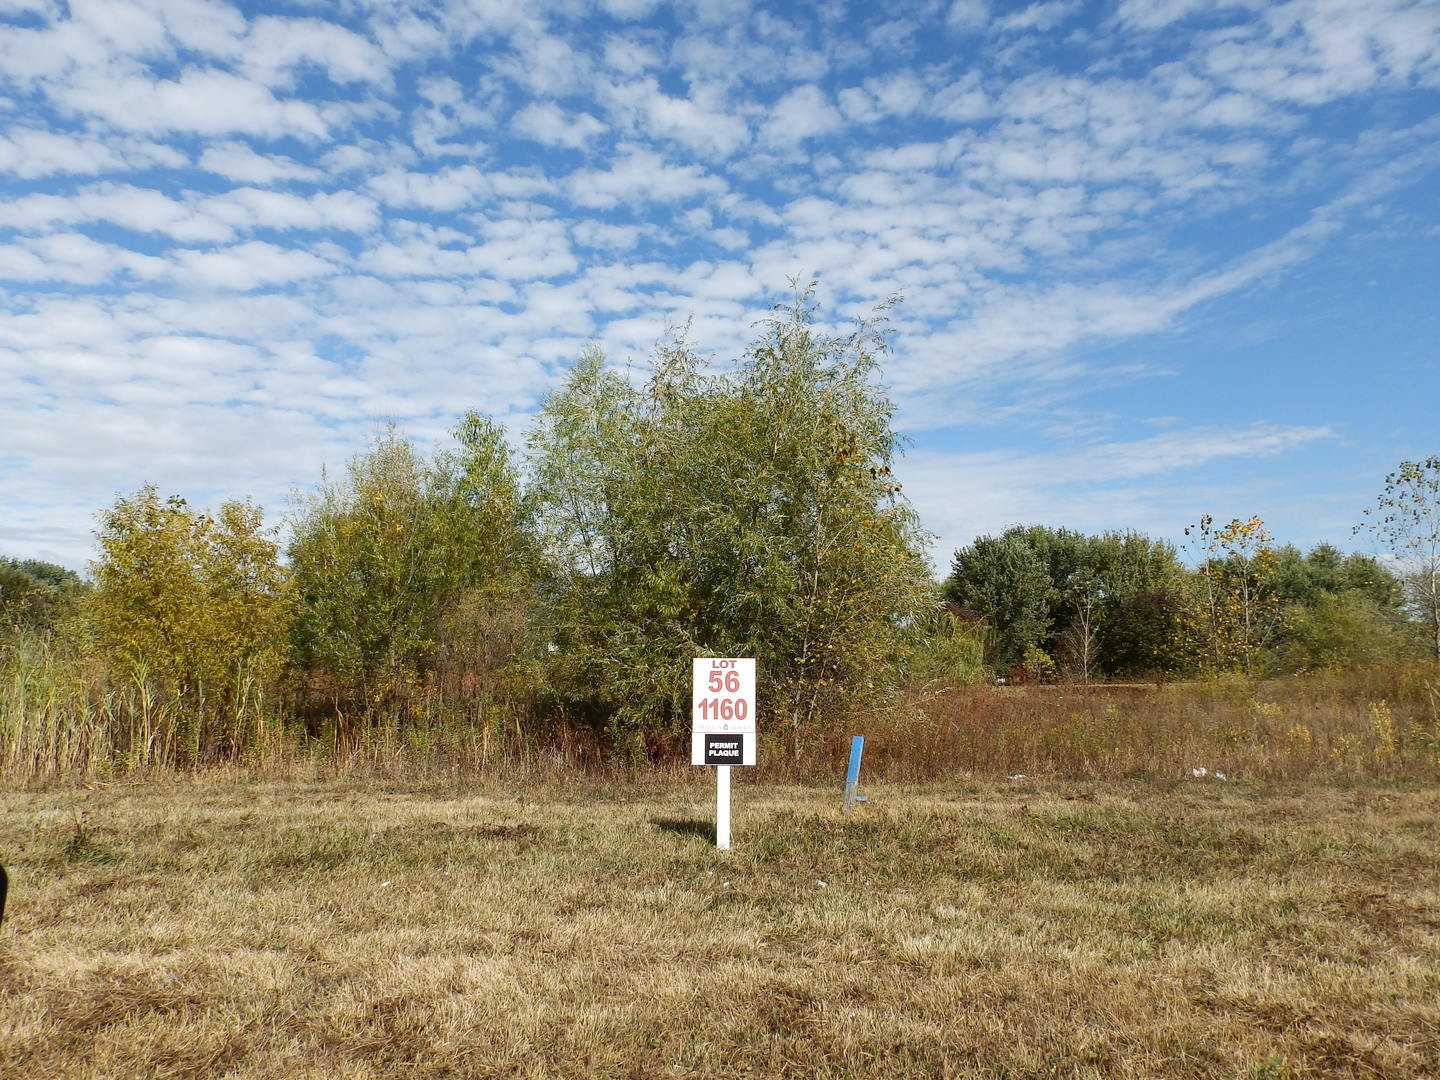 Lot 56 Hilldale, ST. CHARLES, Illinois, 60175